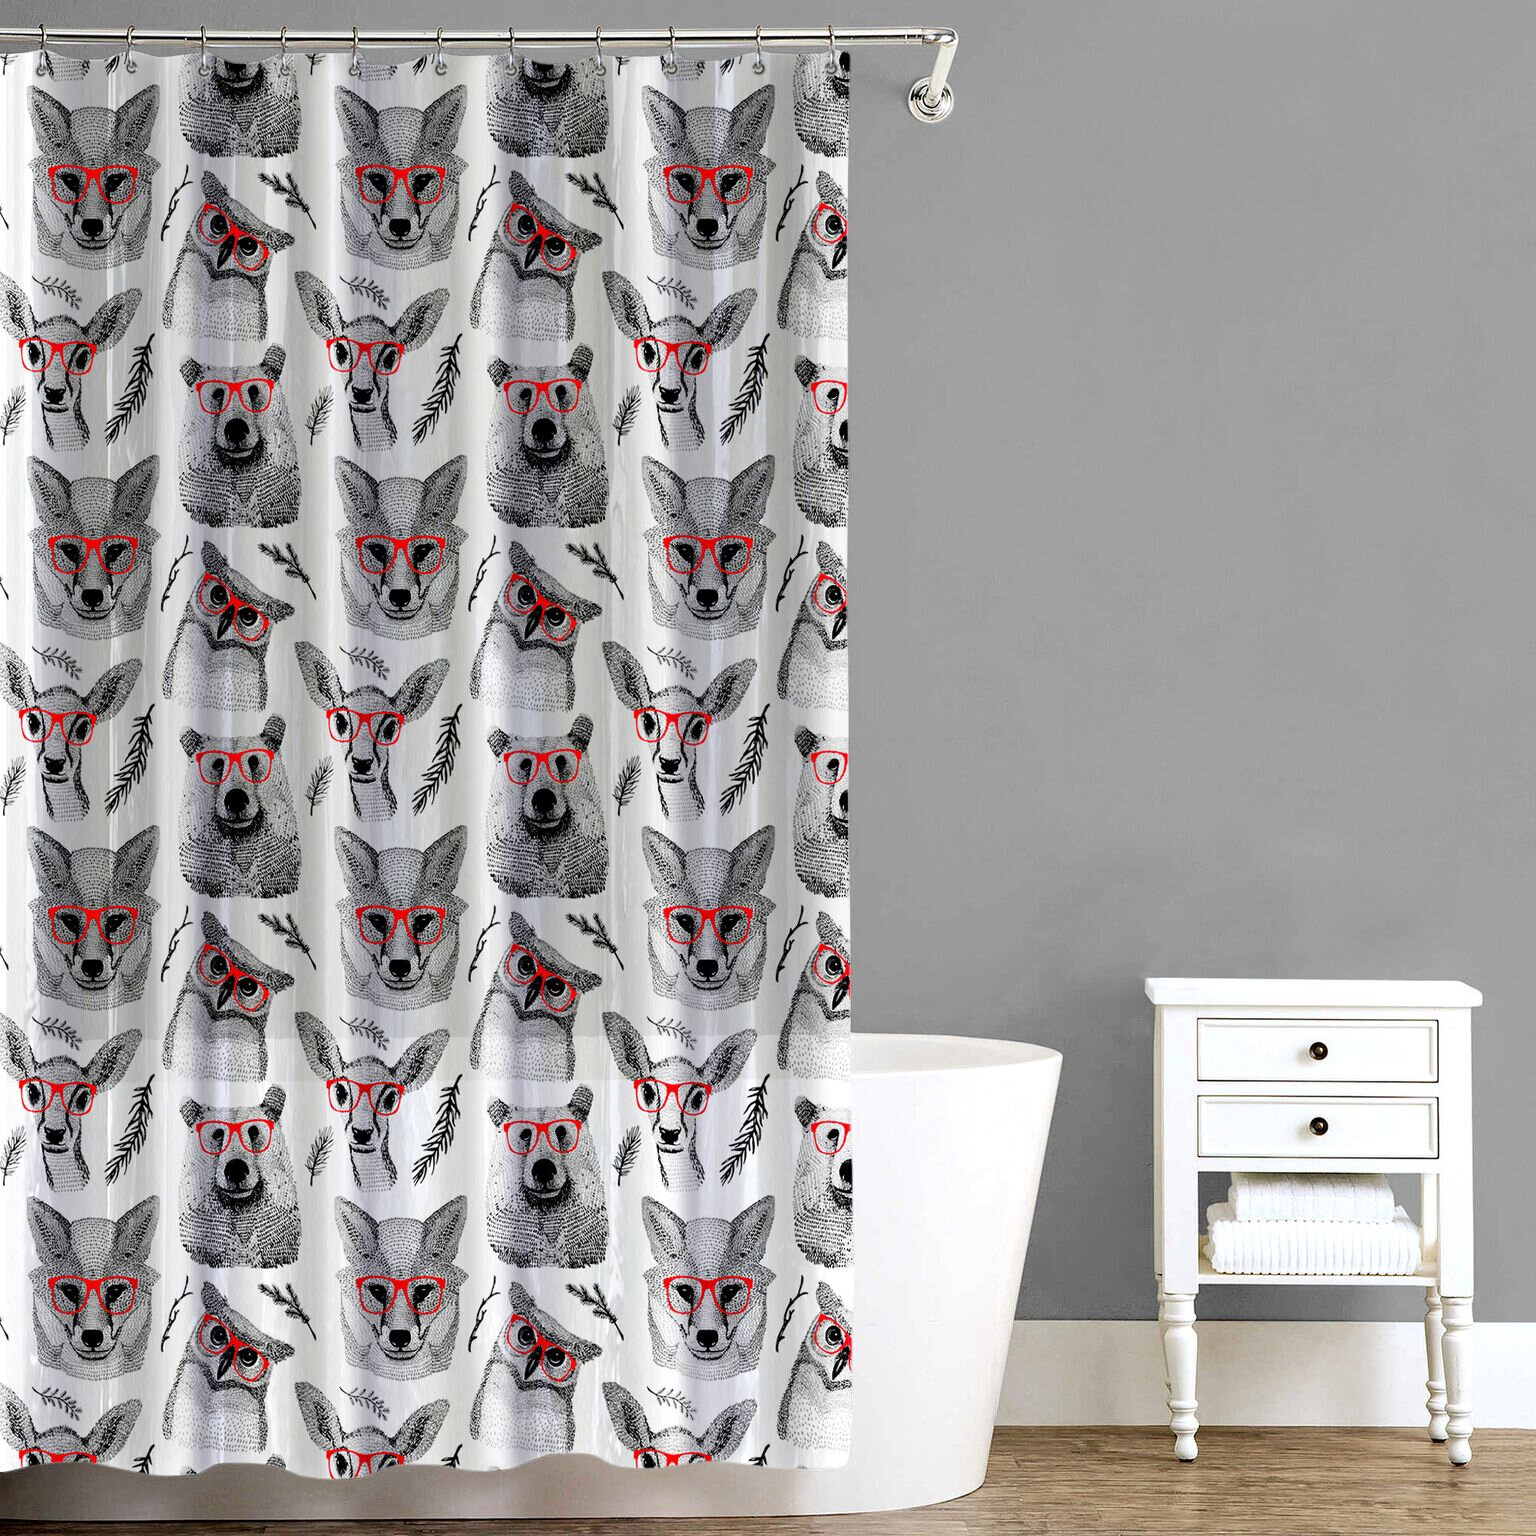 East Urban Home Woodland Creatures Shower Curtain